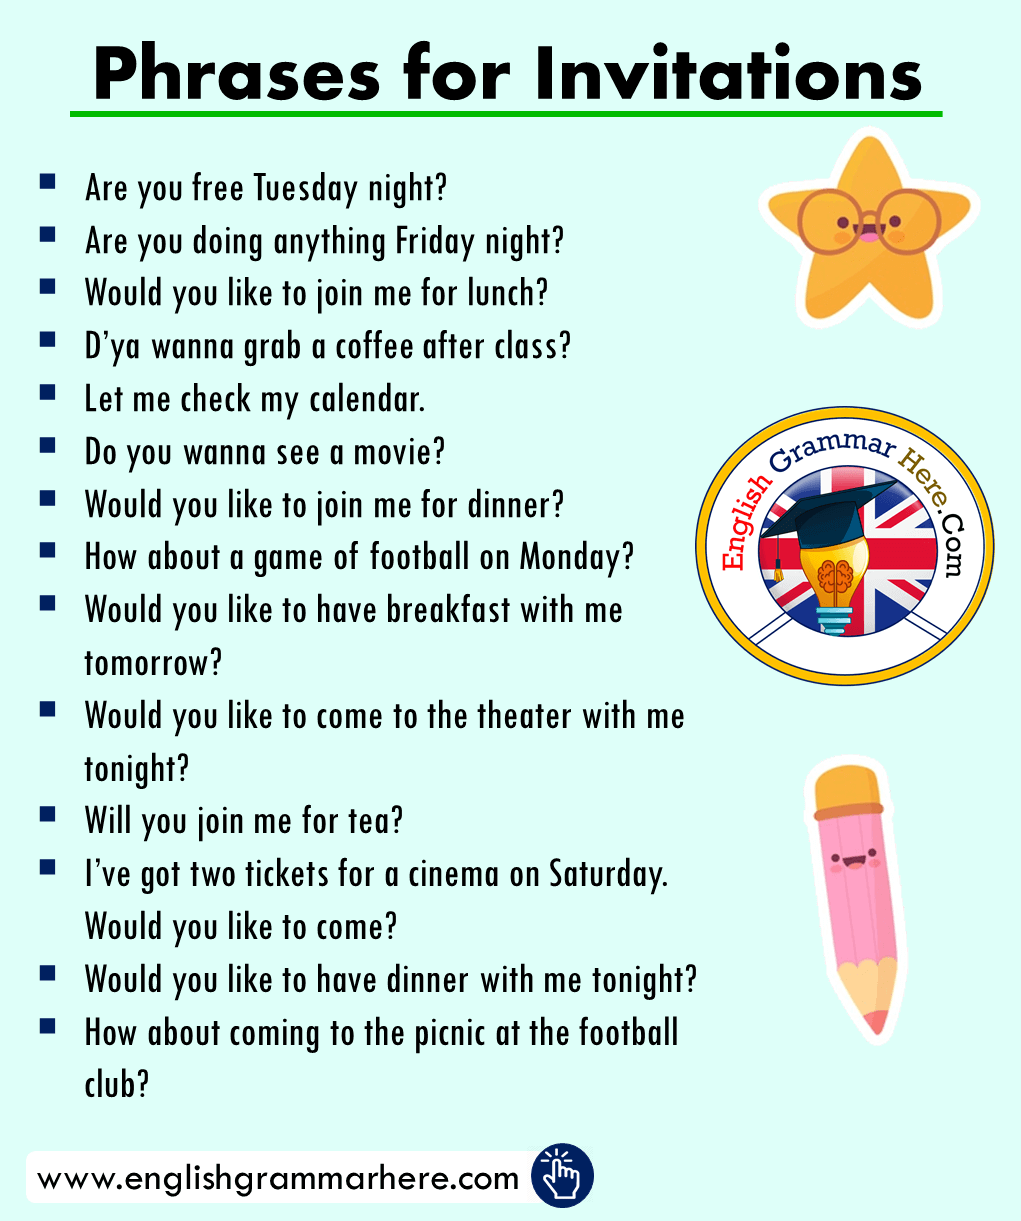 Phrases for Invitations Examples in English